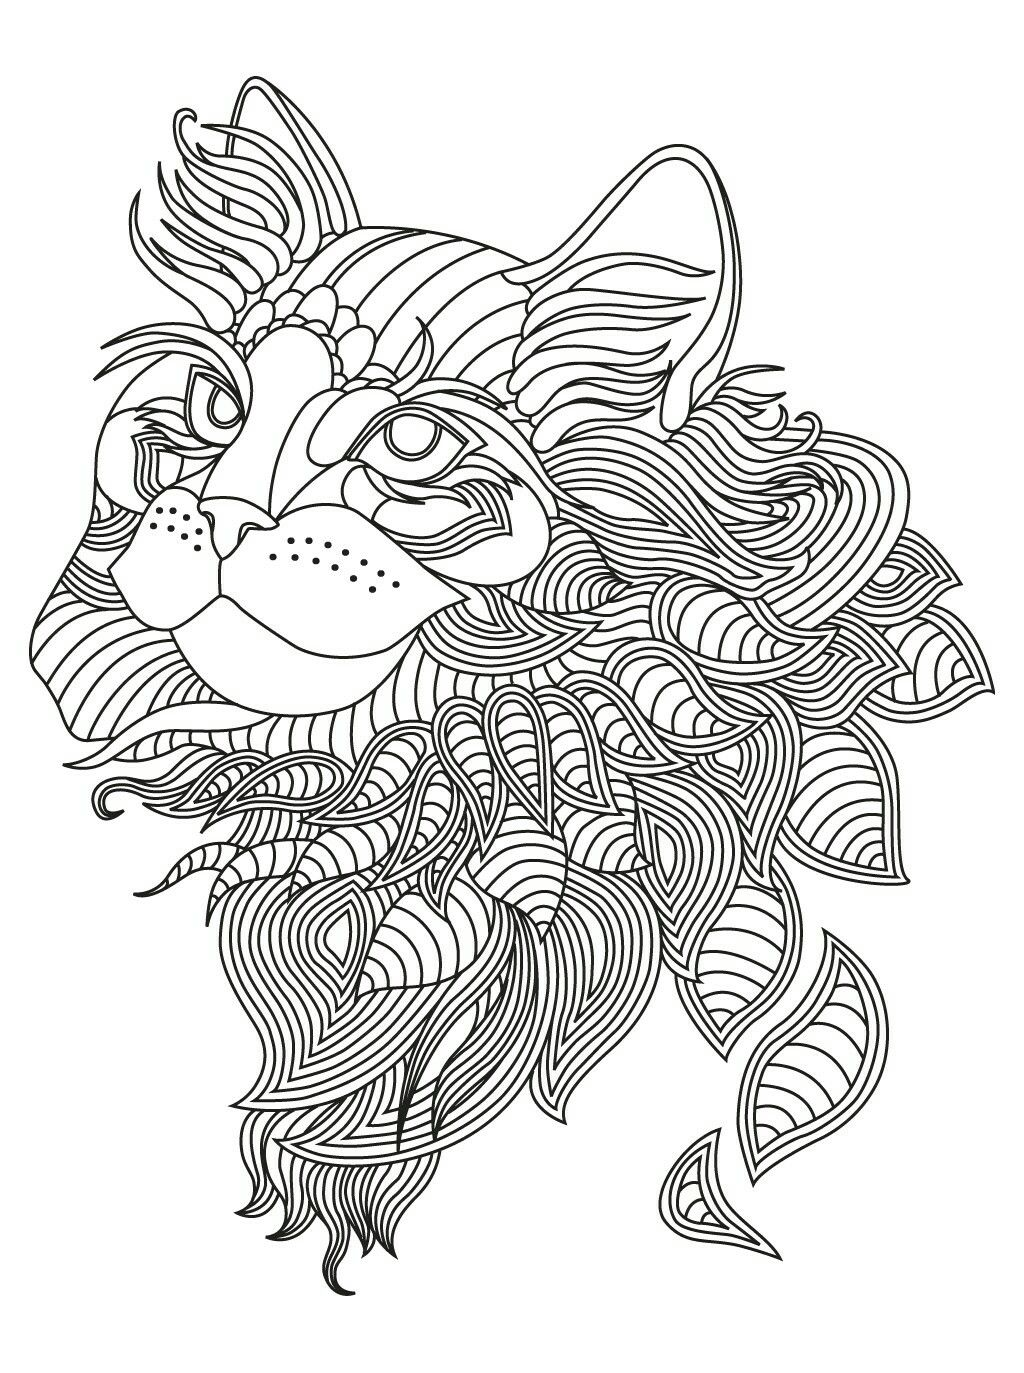 Cat tangle coloring page | ✐Zentangles ~ Adult Colouring | Pinterest